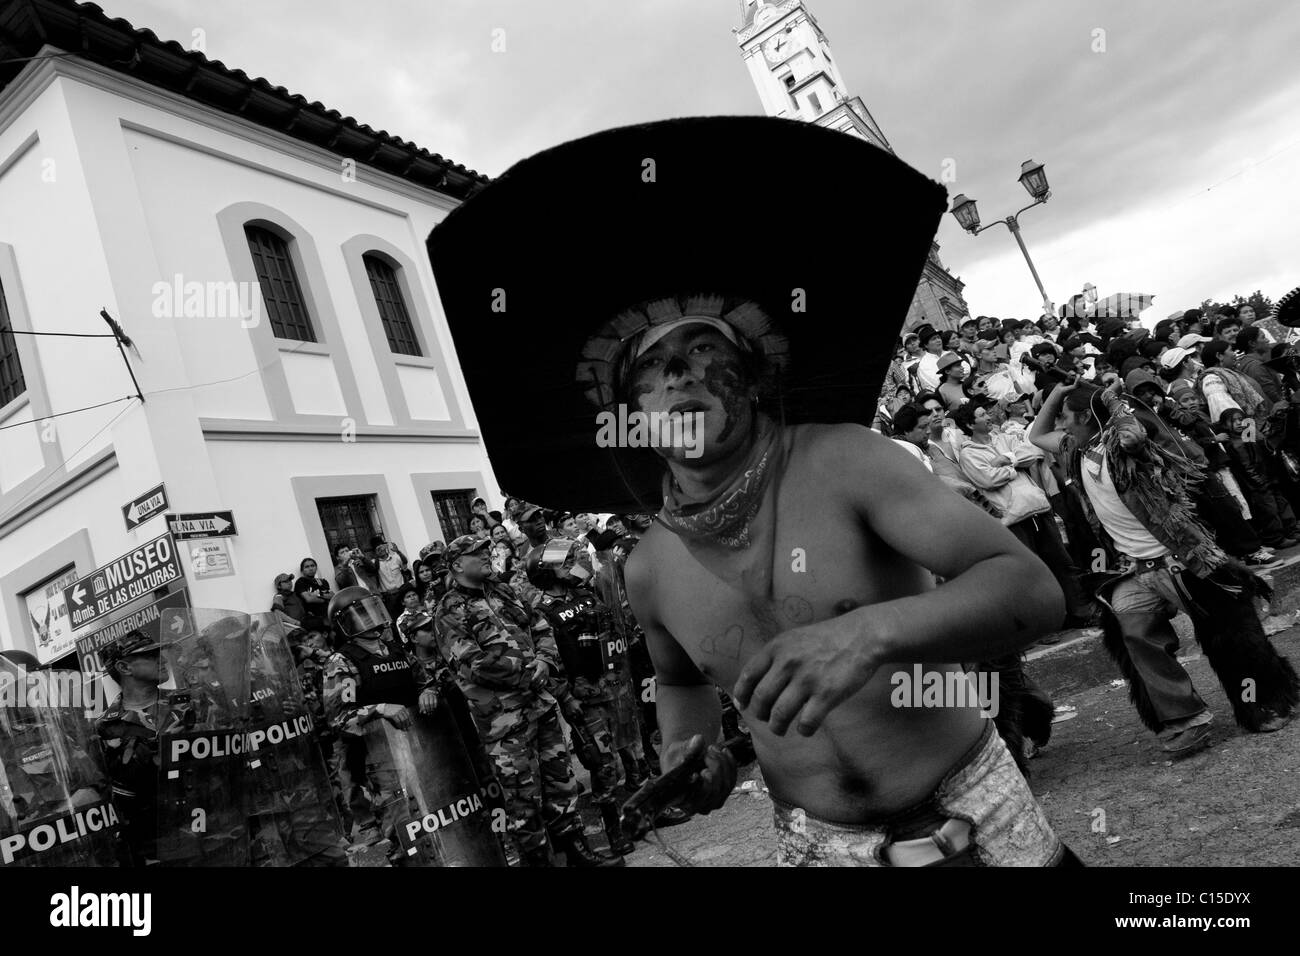 An Indian, wearing a large cardboard hat, dances in front of the police block during the Inti Raymi festivities - Stock Image